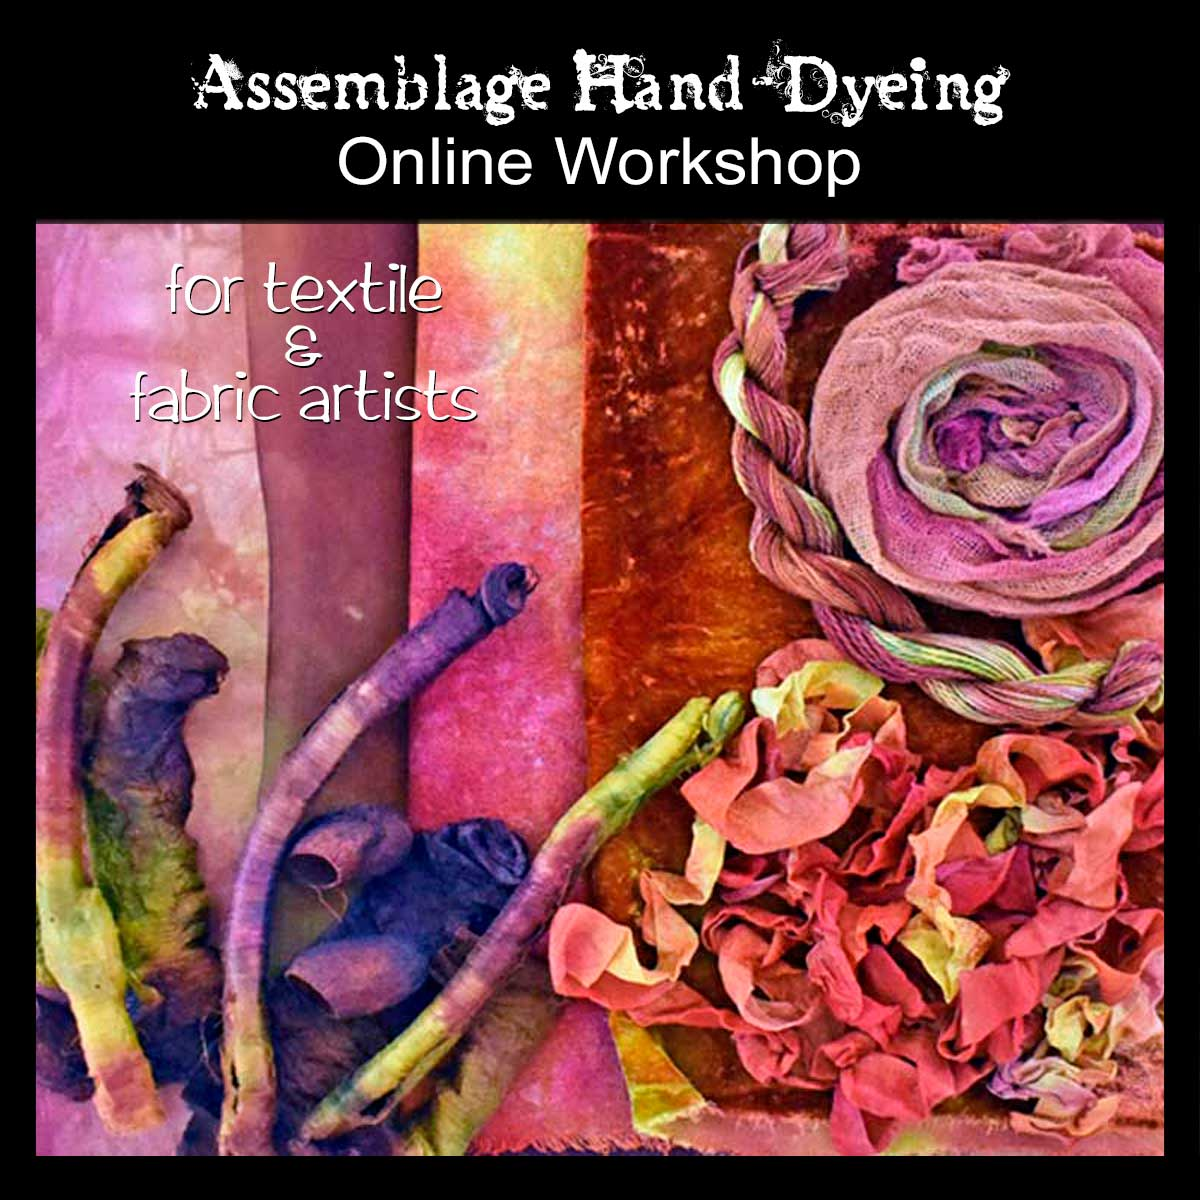 Assemblage Hand-Dyeing